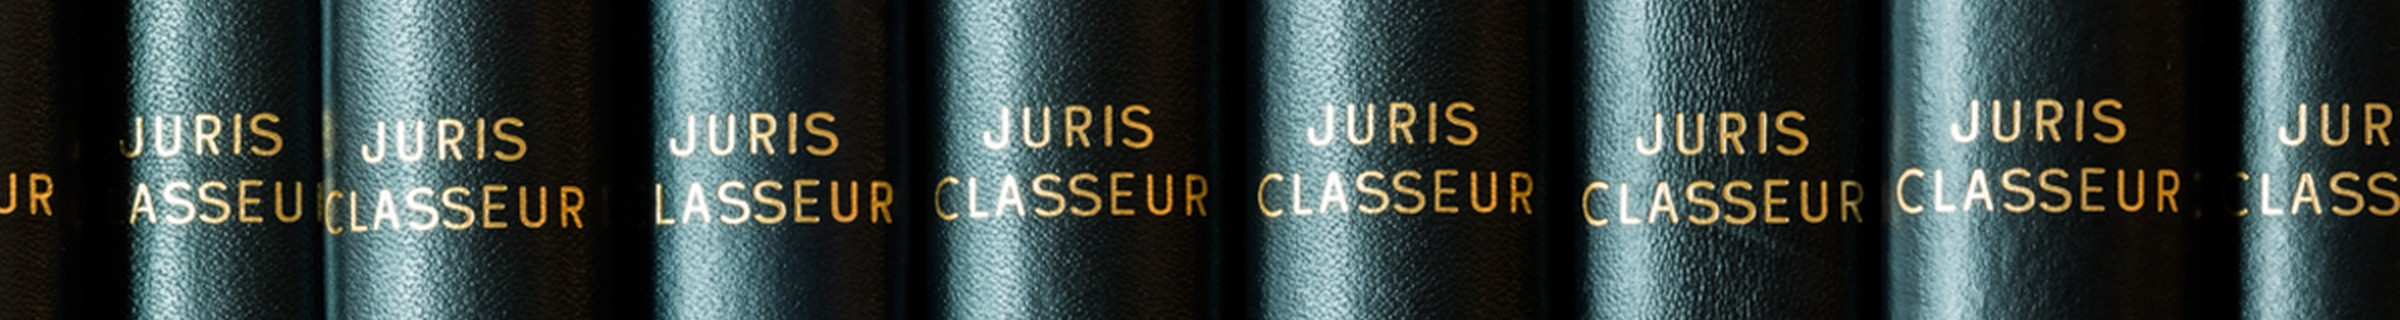 Jurisclasseur